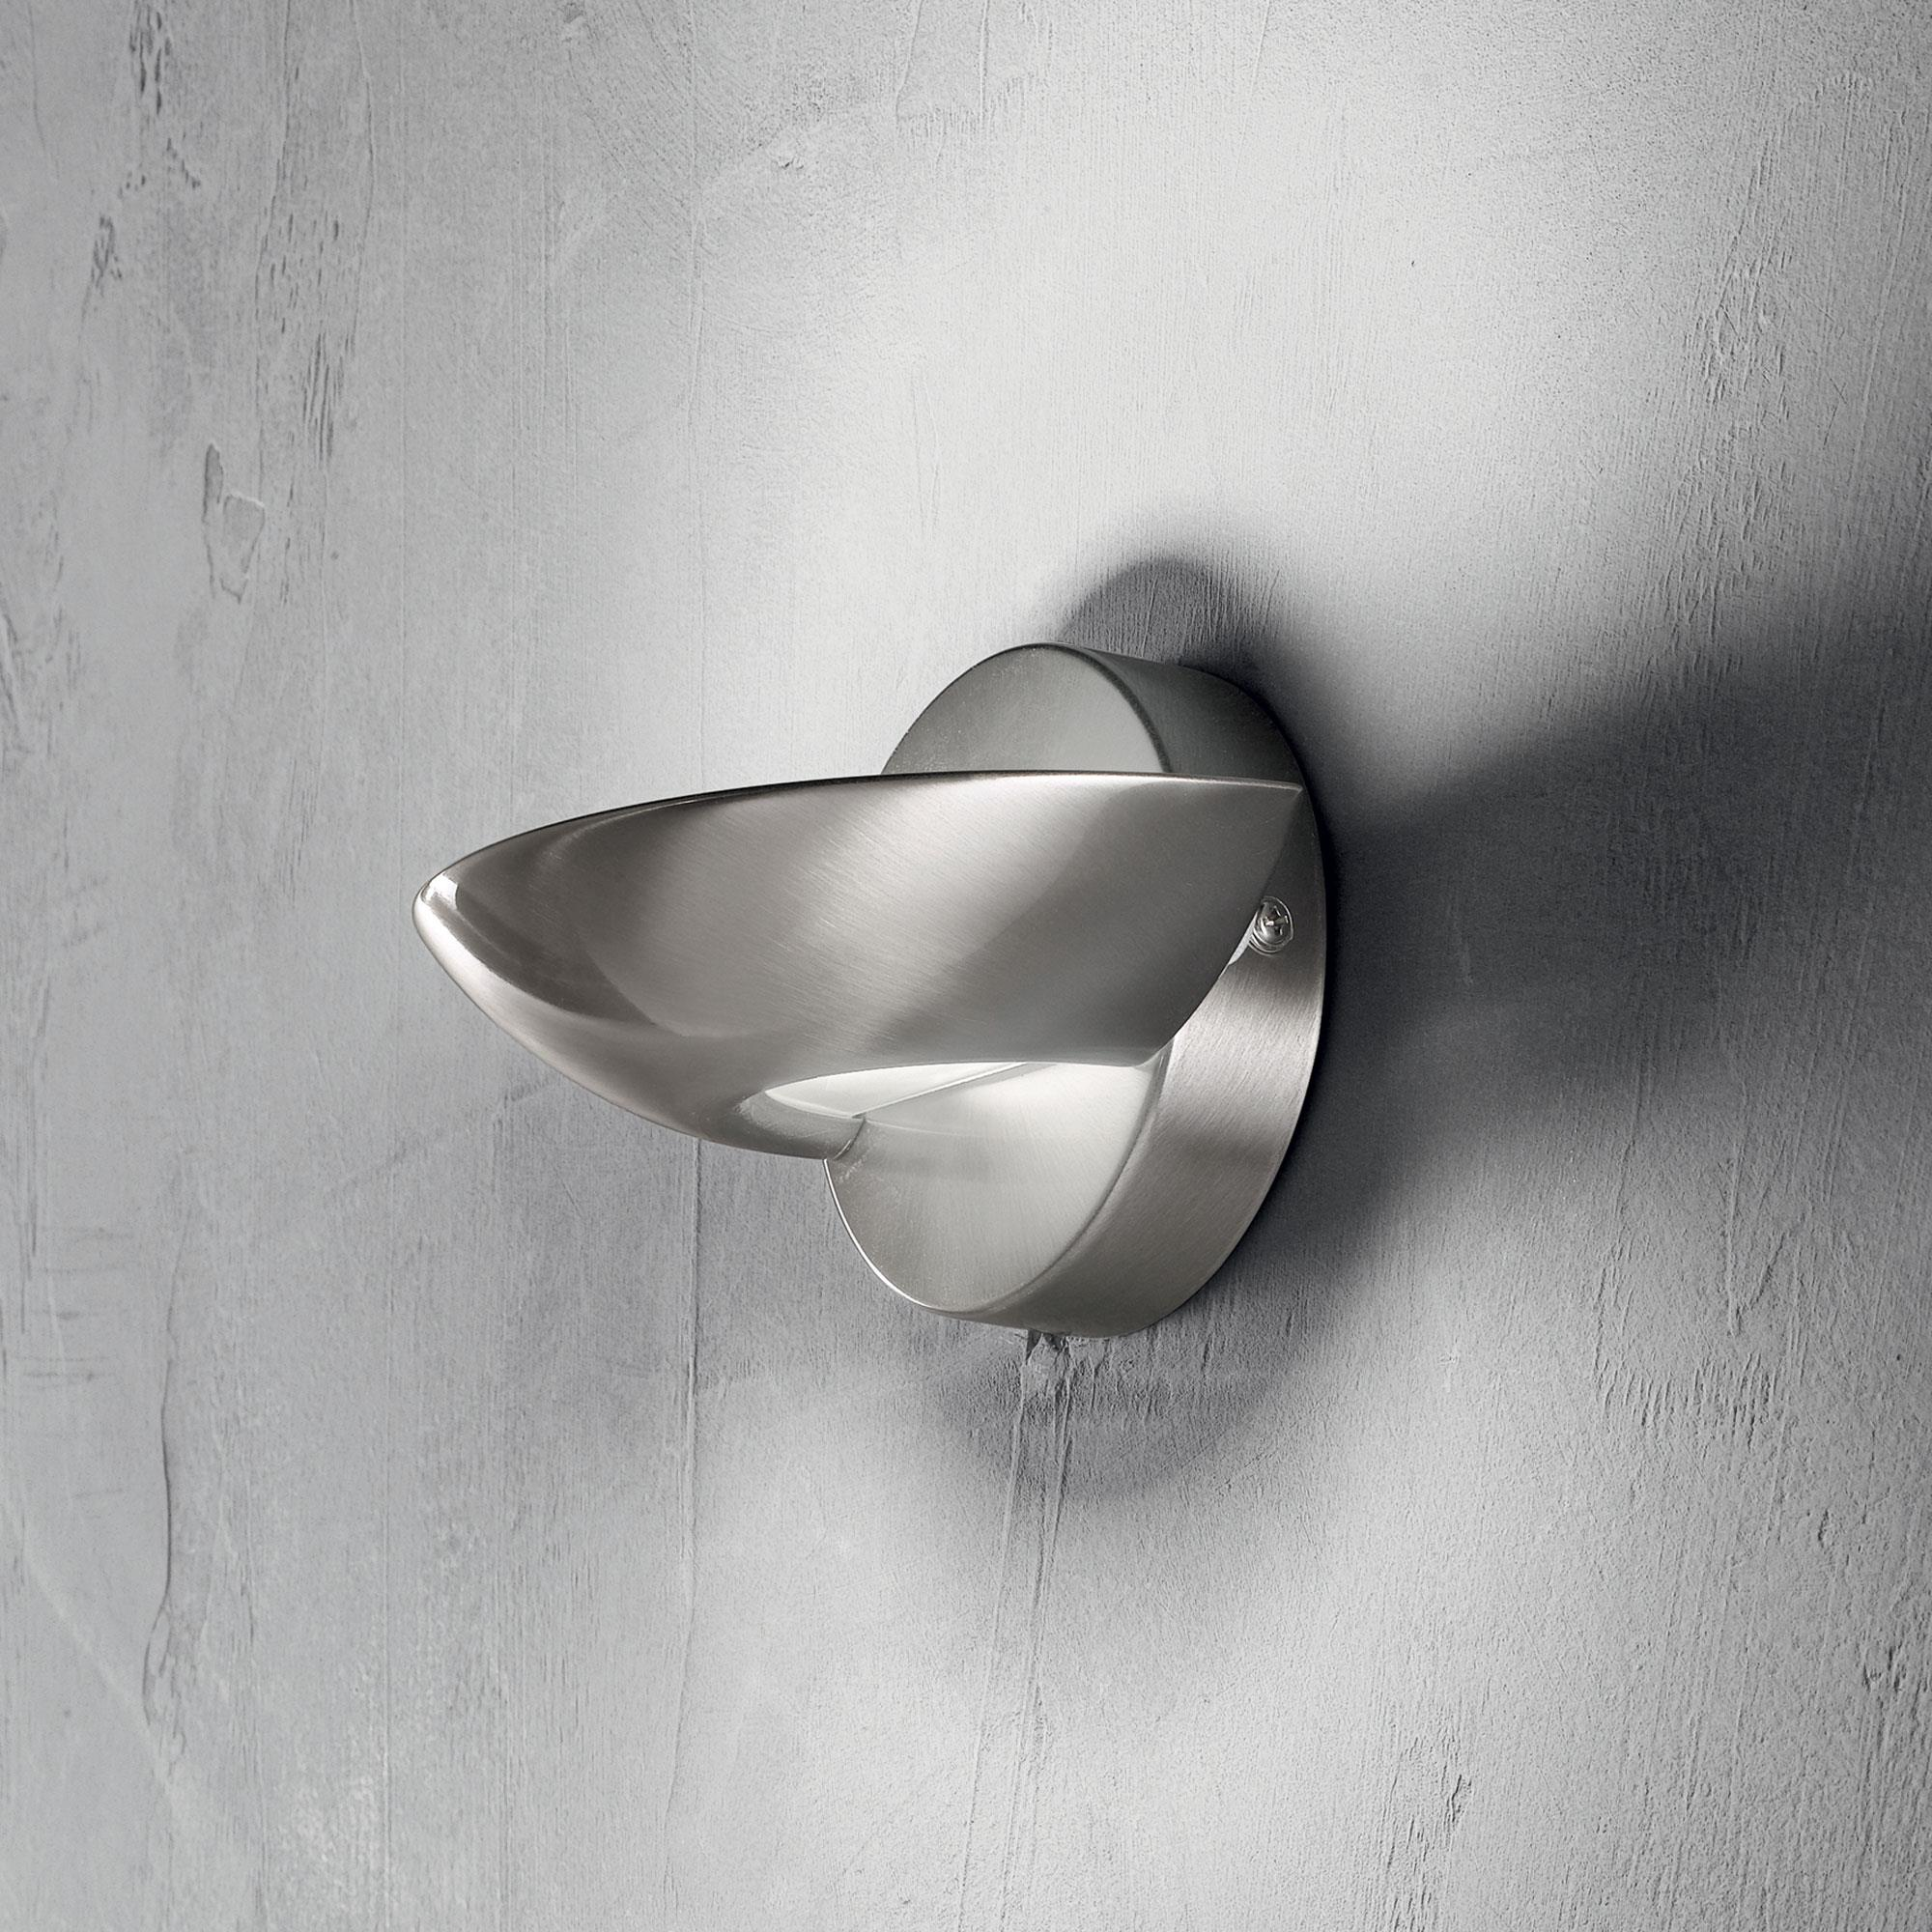 Ideal Lux 002491 Lumina AP1 Nickel falilámpa